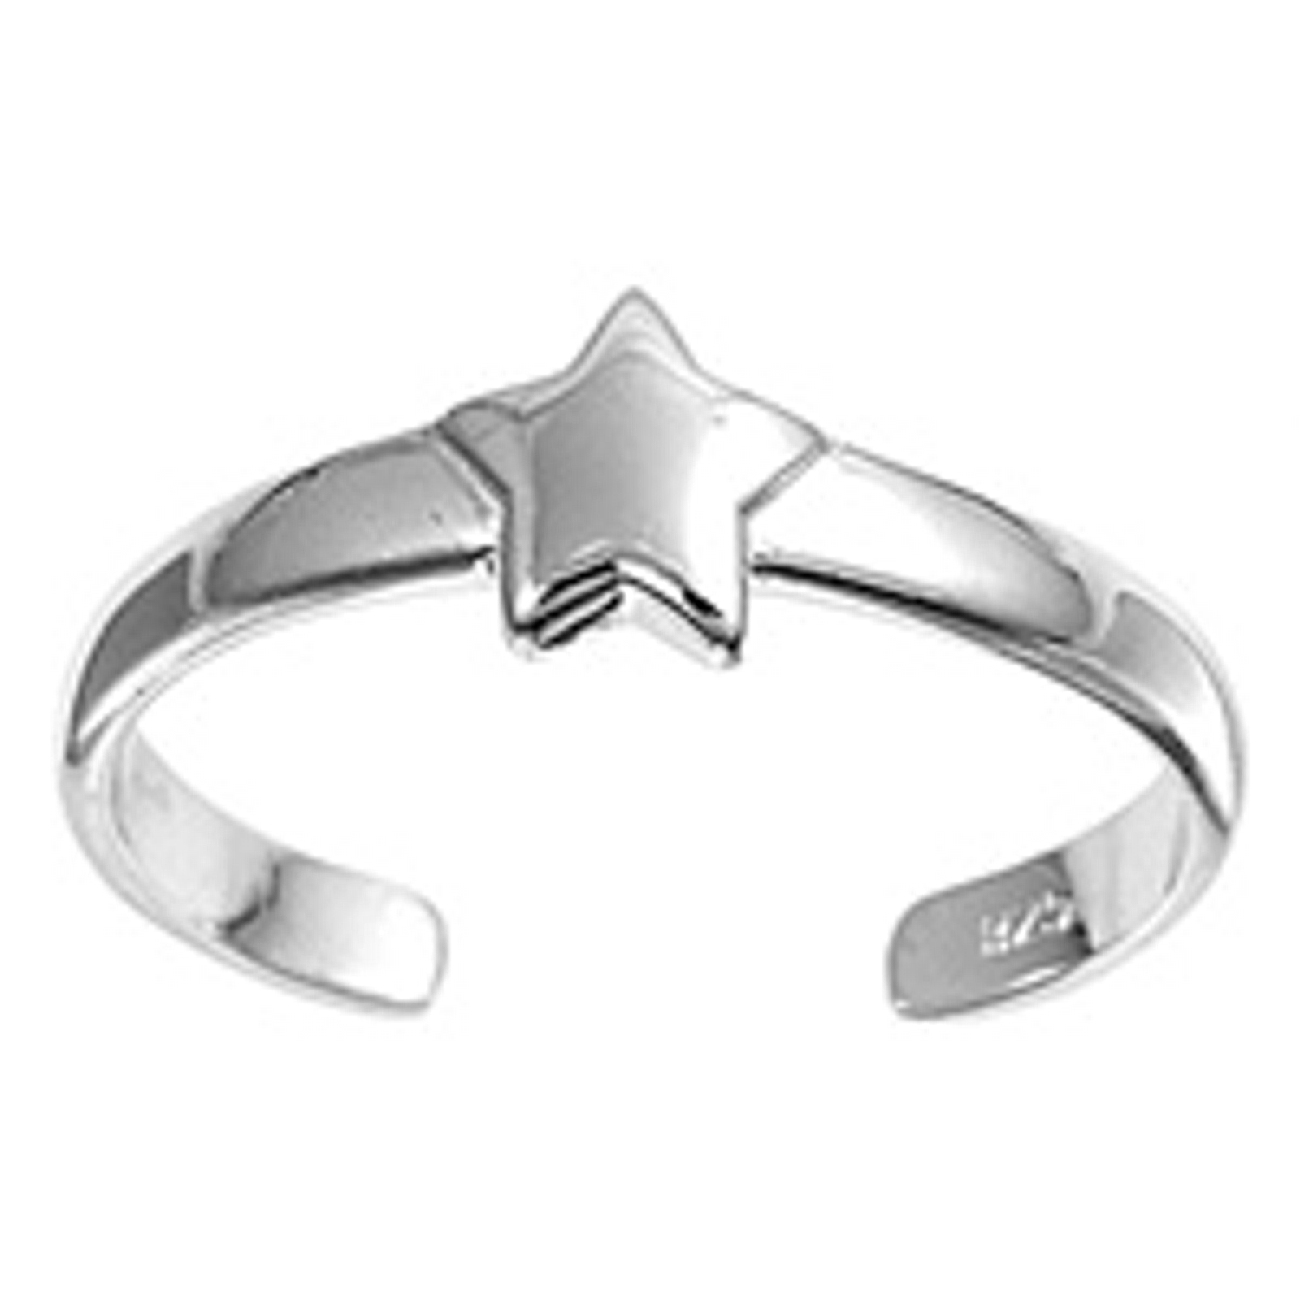 Shiny Celestial Star Adjustable Toe Ring